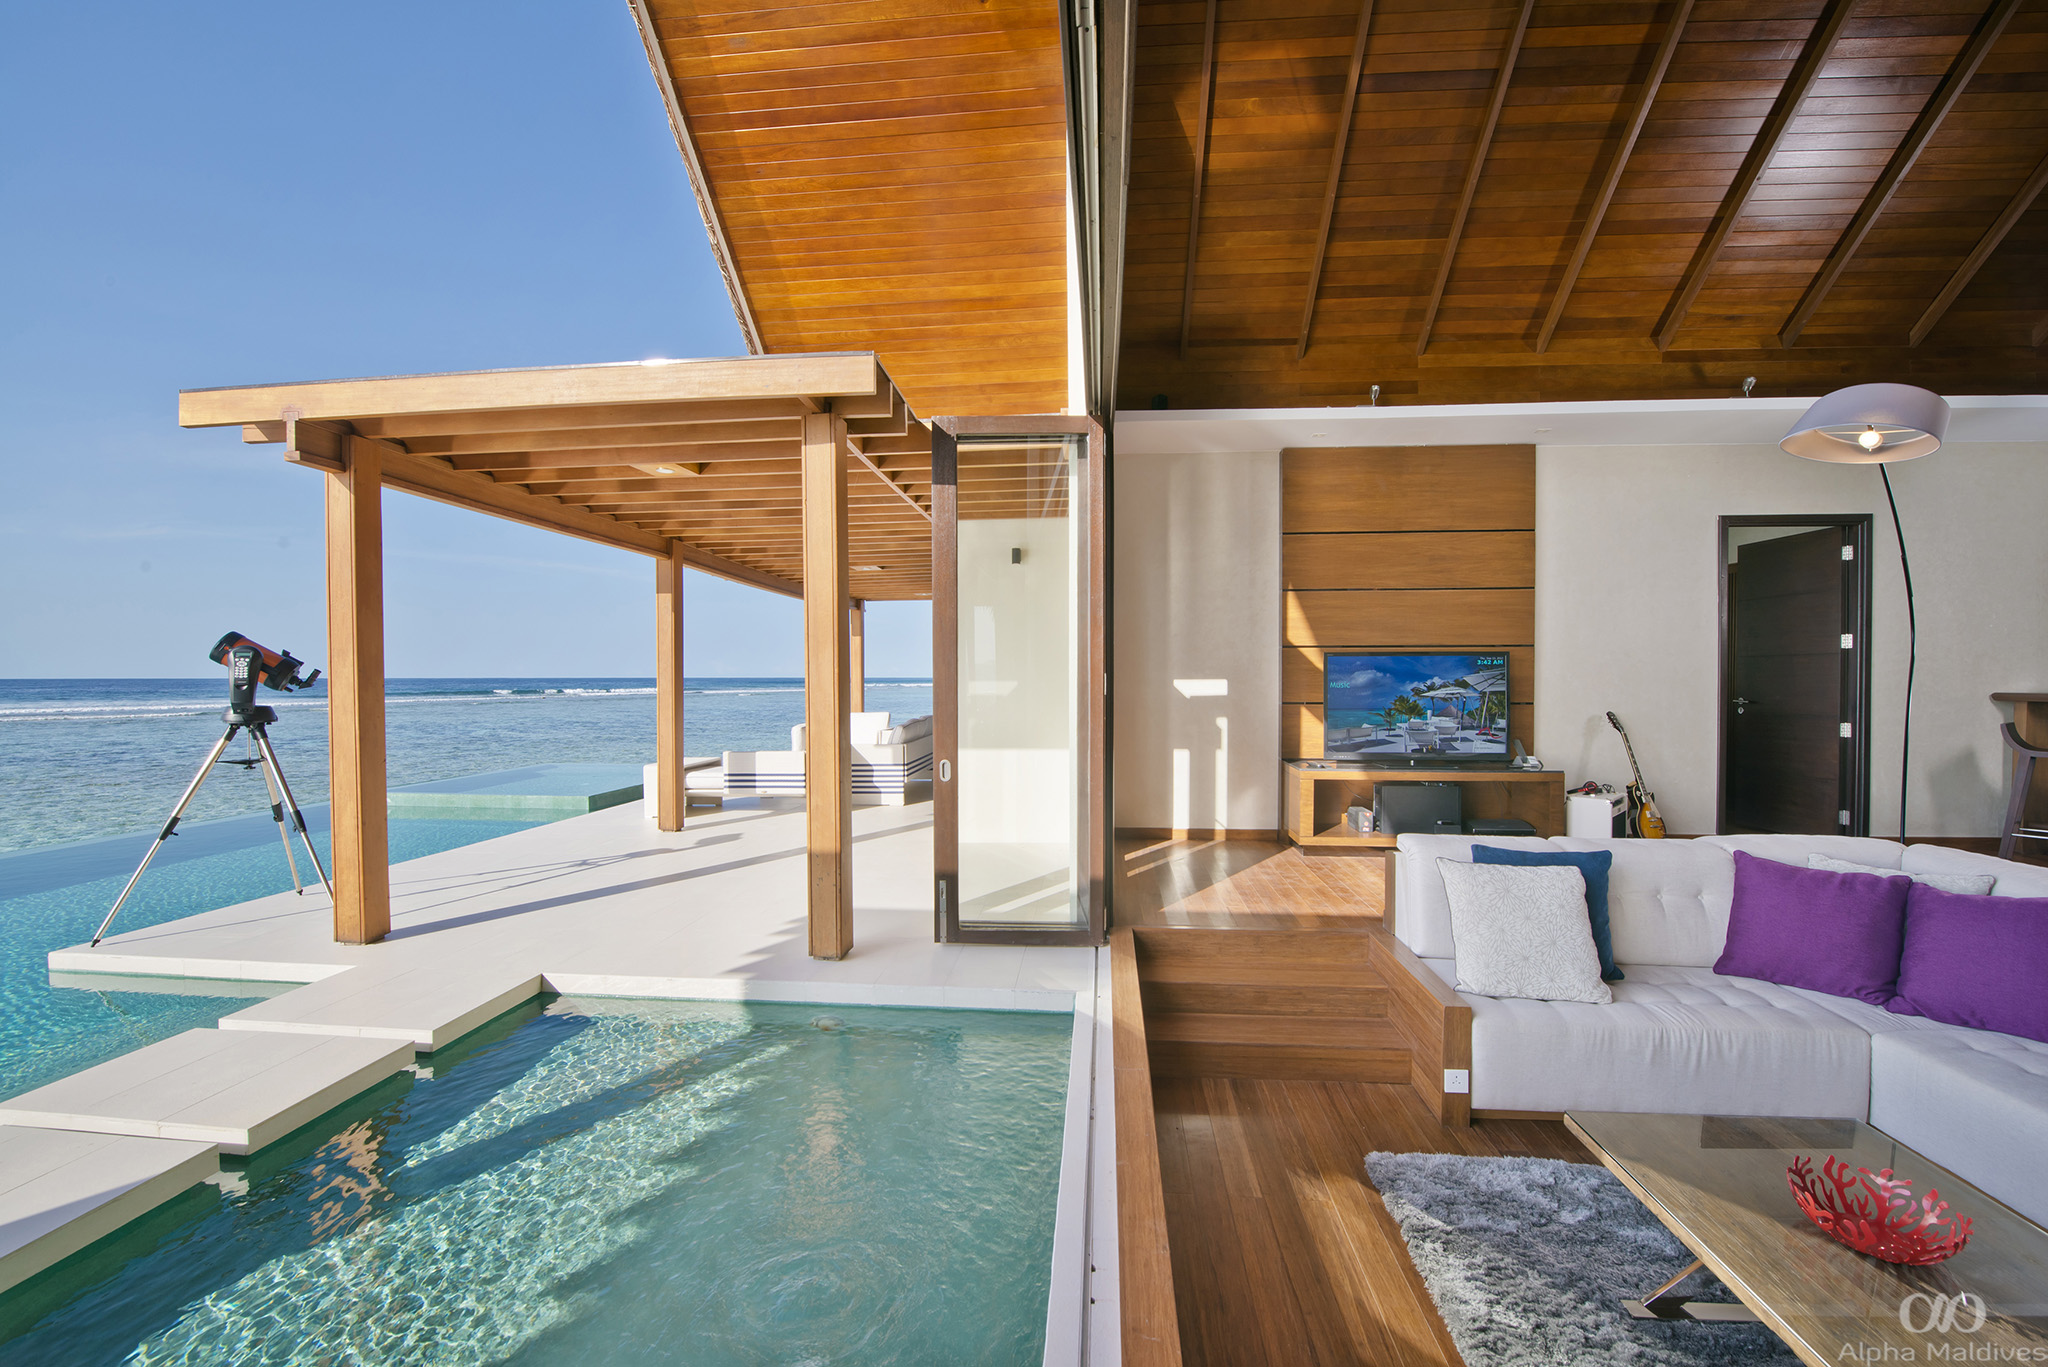 61508818-H1-Ocean_Pavilion_Two_Bedroom_with_Pool_-_Interior